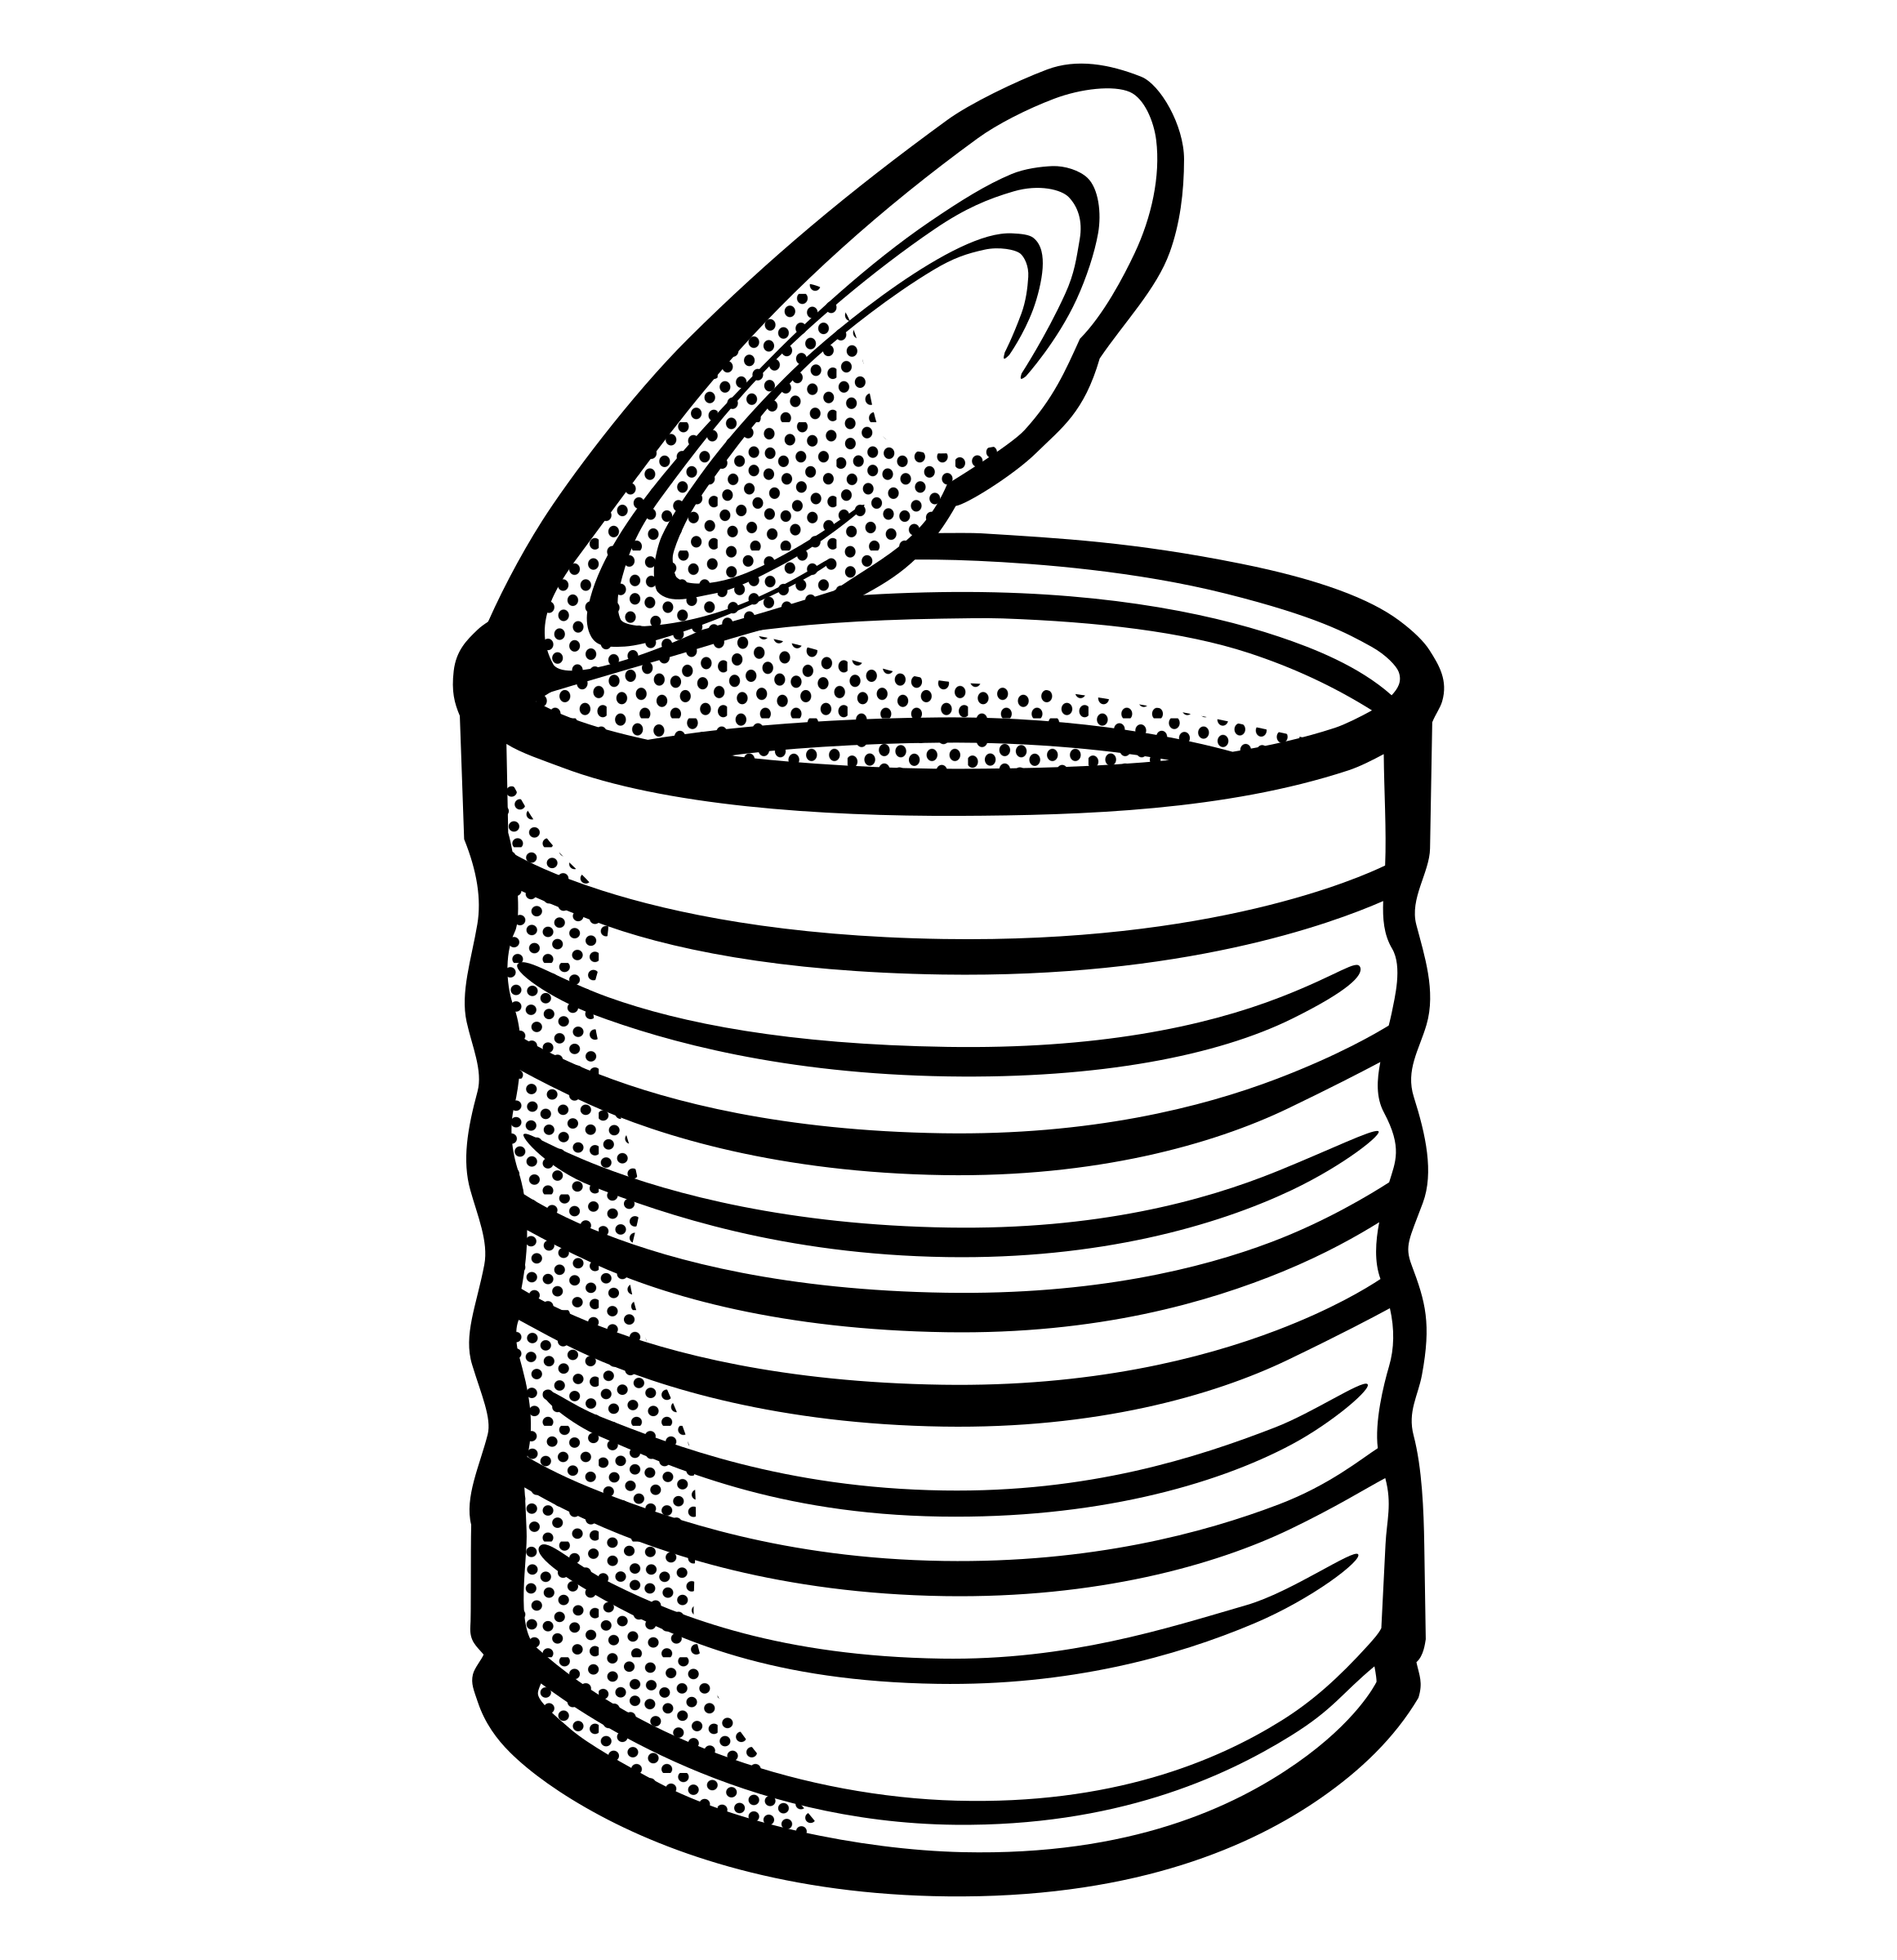 Can Clipart Black And White.